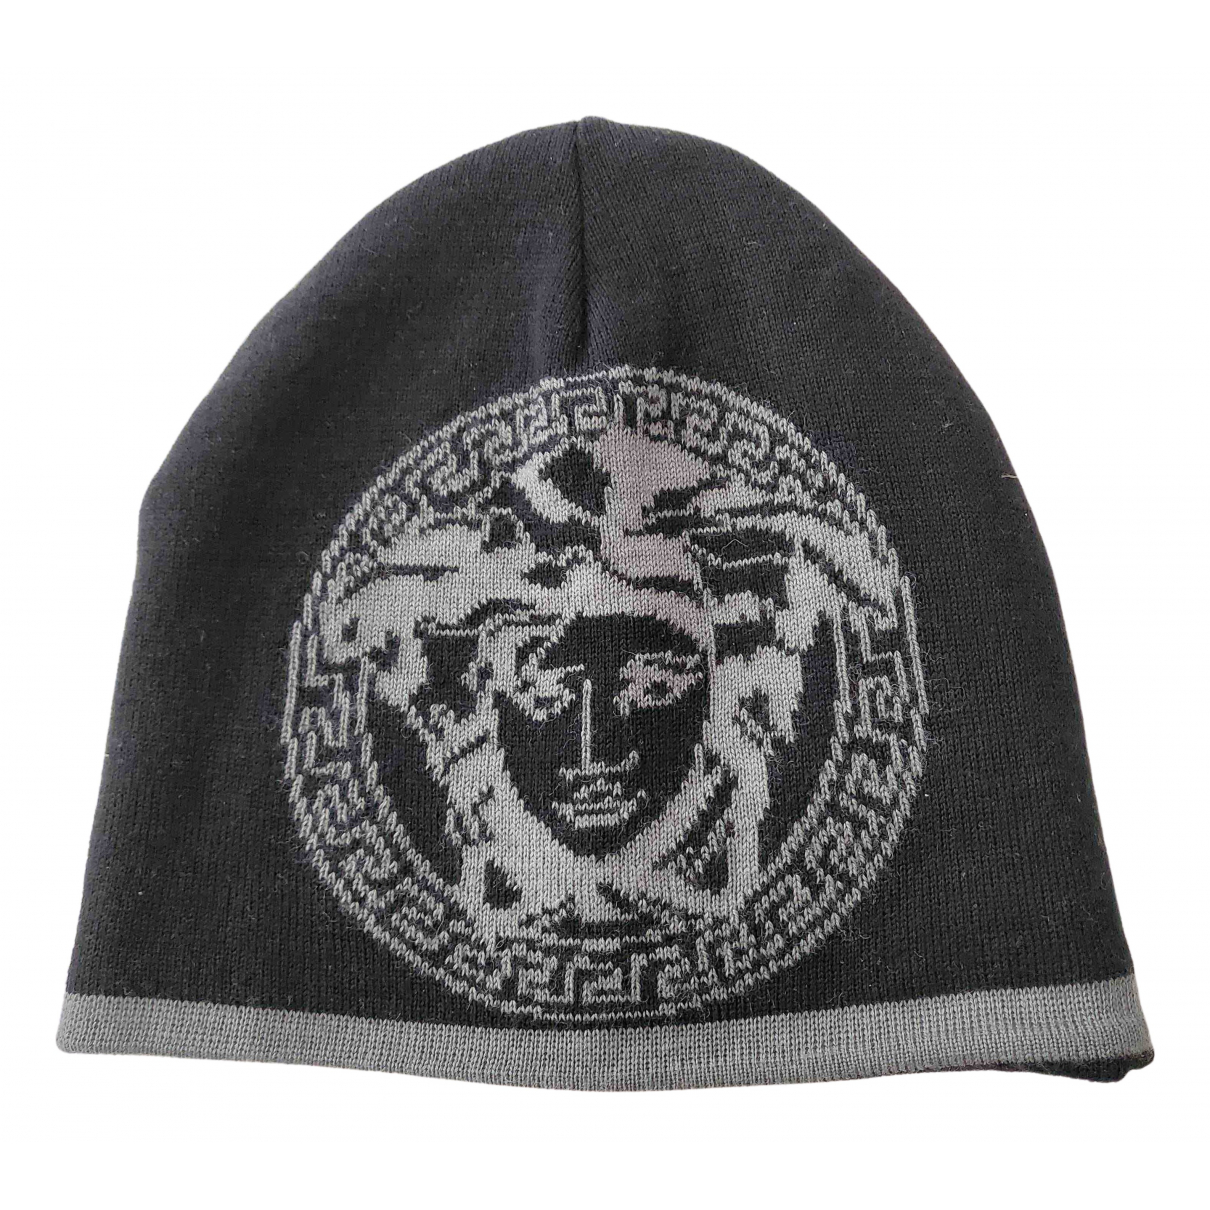 Versace N Black Cotton hat & pull on hat for Men S International